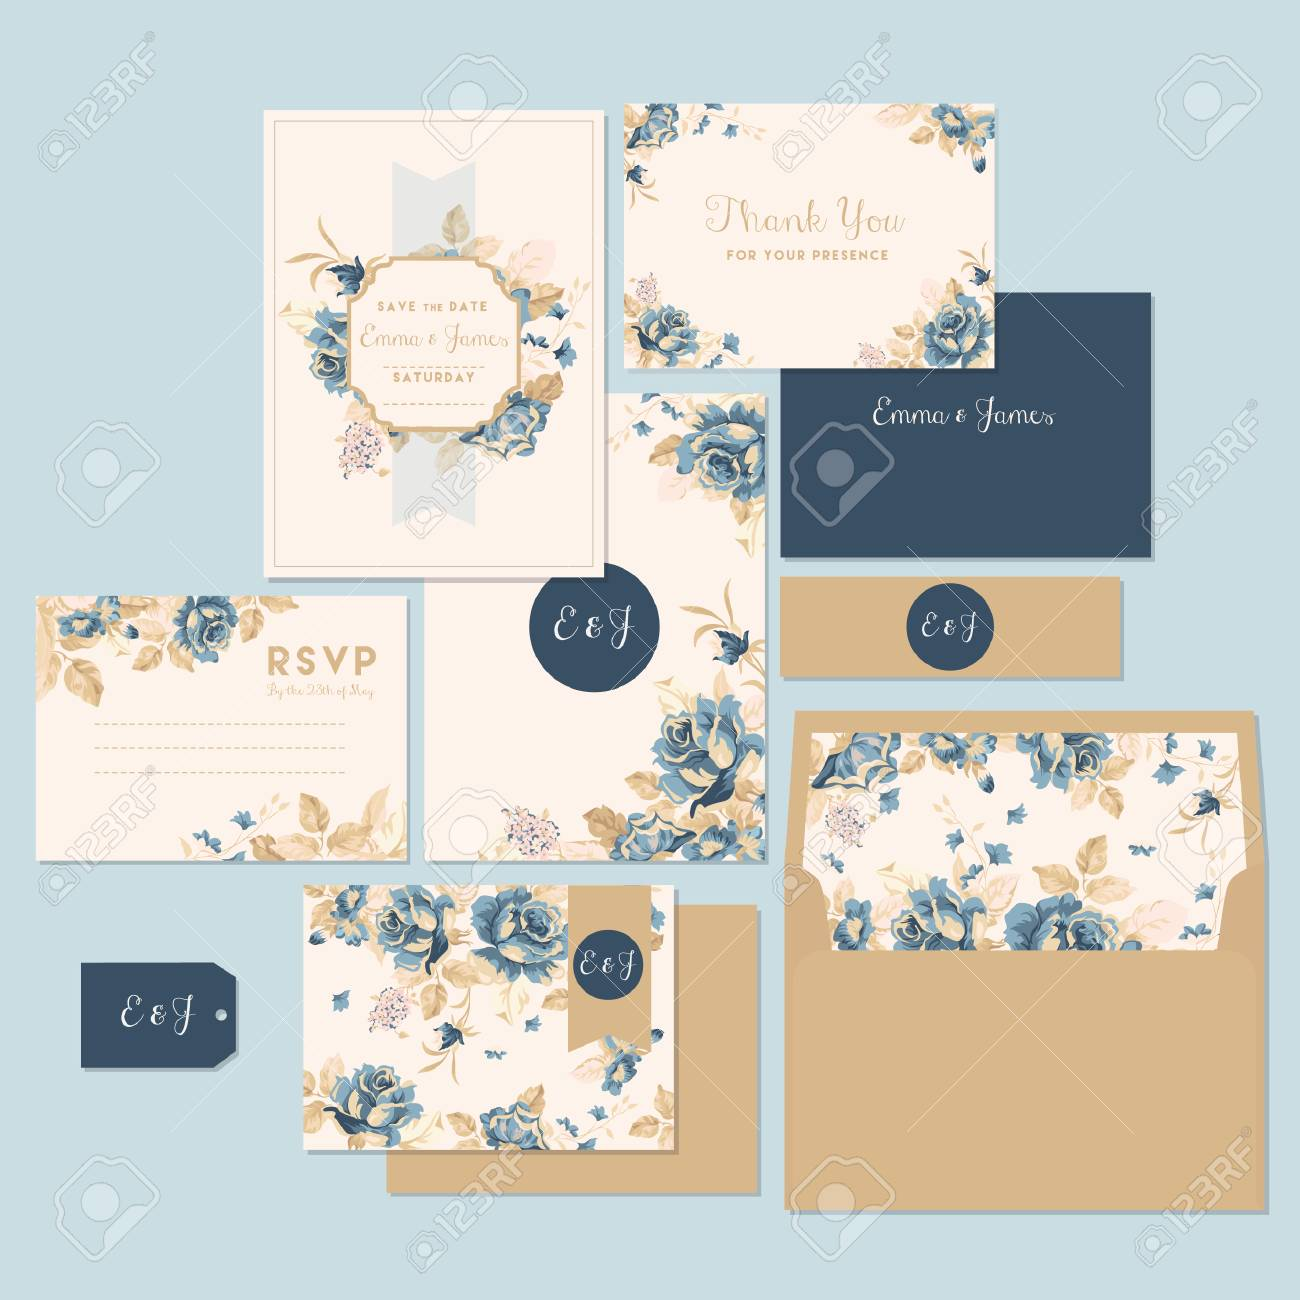 Wedding invitation and thank you card - 81538248